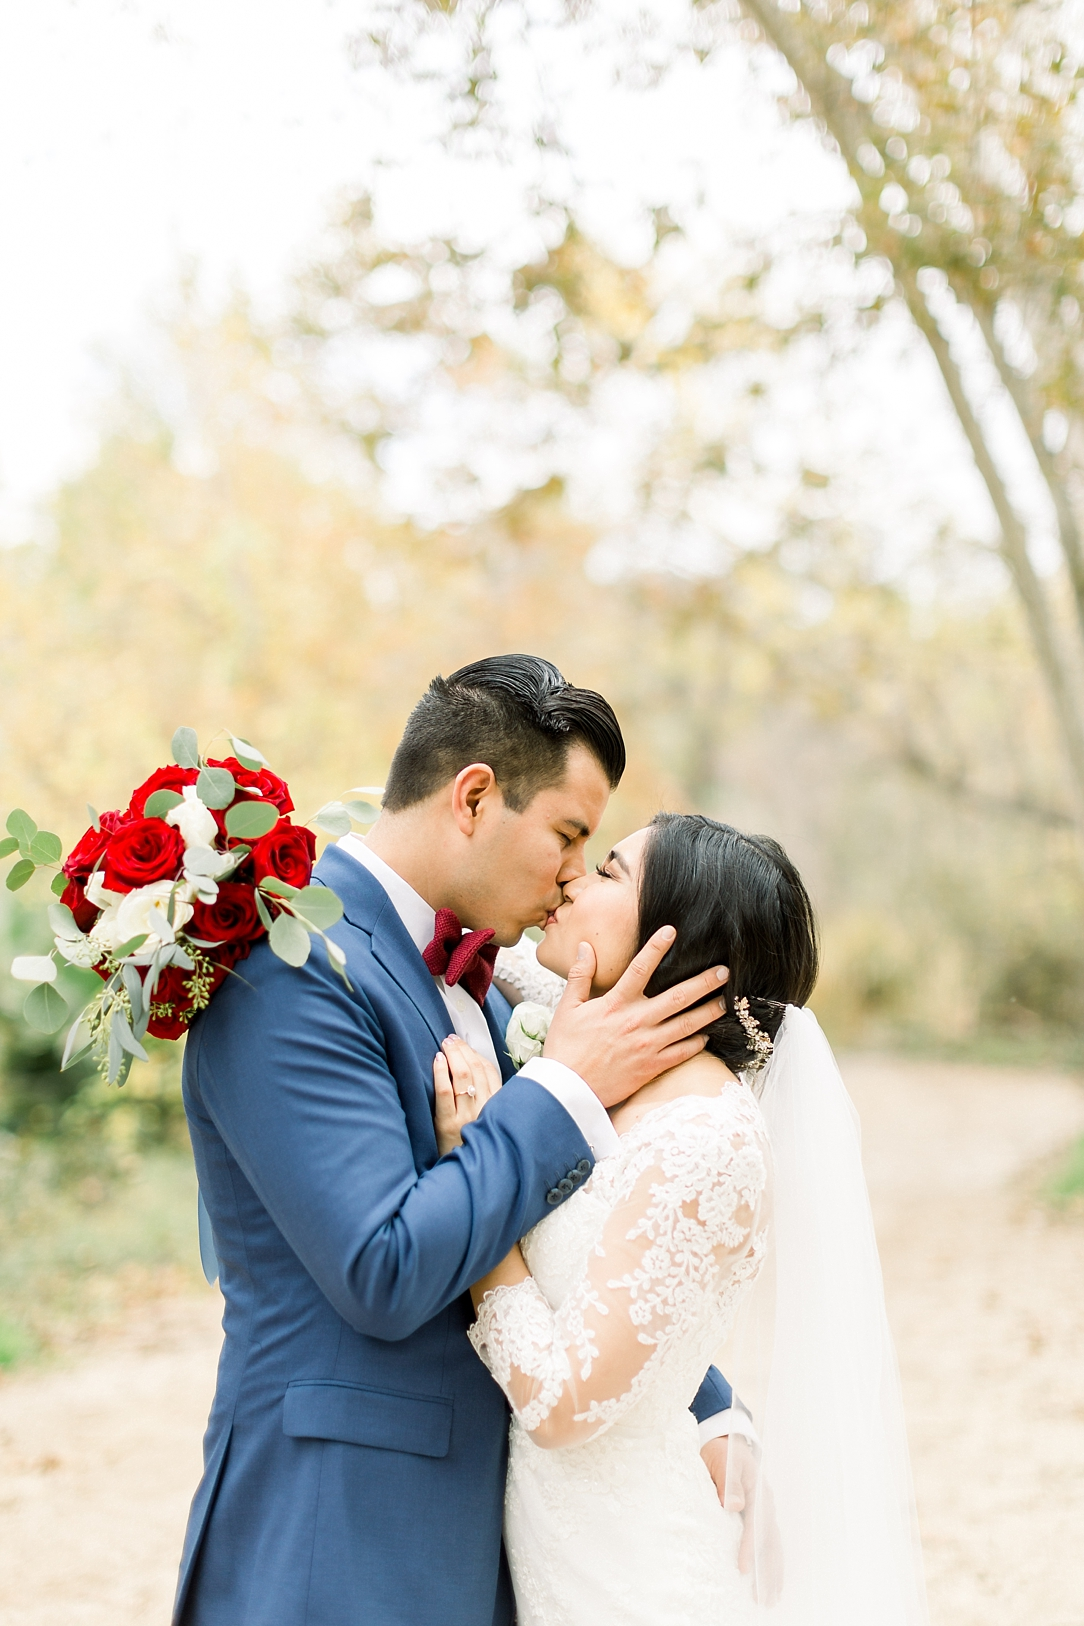 A Vintage Inspired Wedding At Santiago Oaks Regional Park And The Vintage Rose By Natural Light Photographer Madison Ellis Photography. (51)